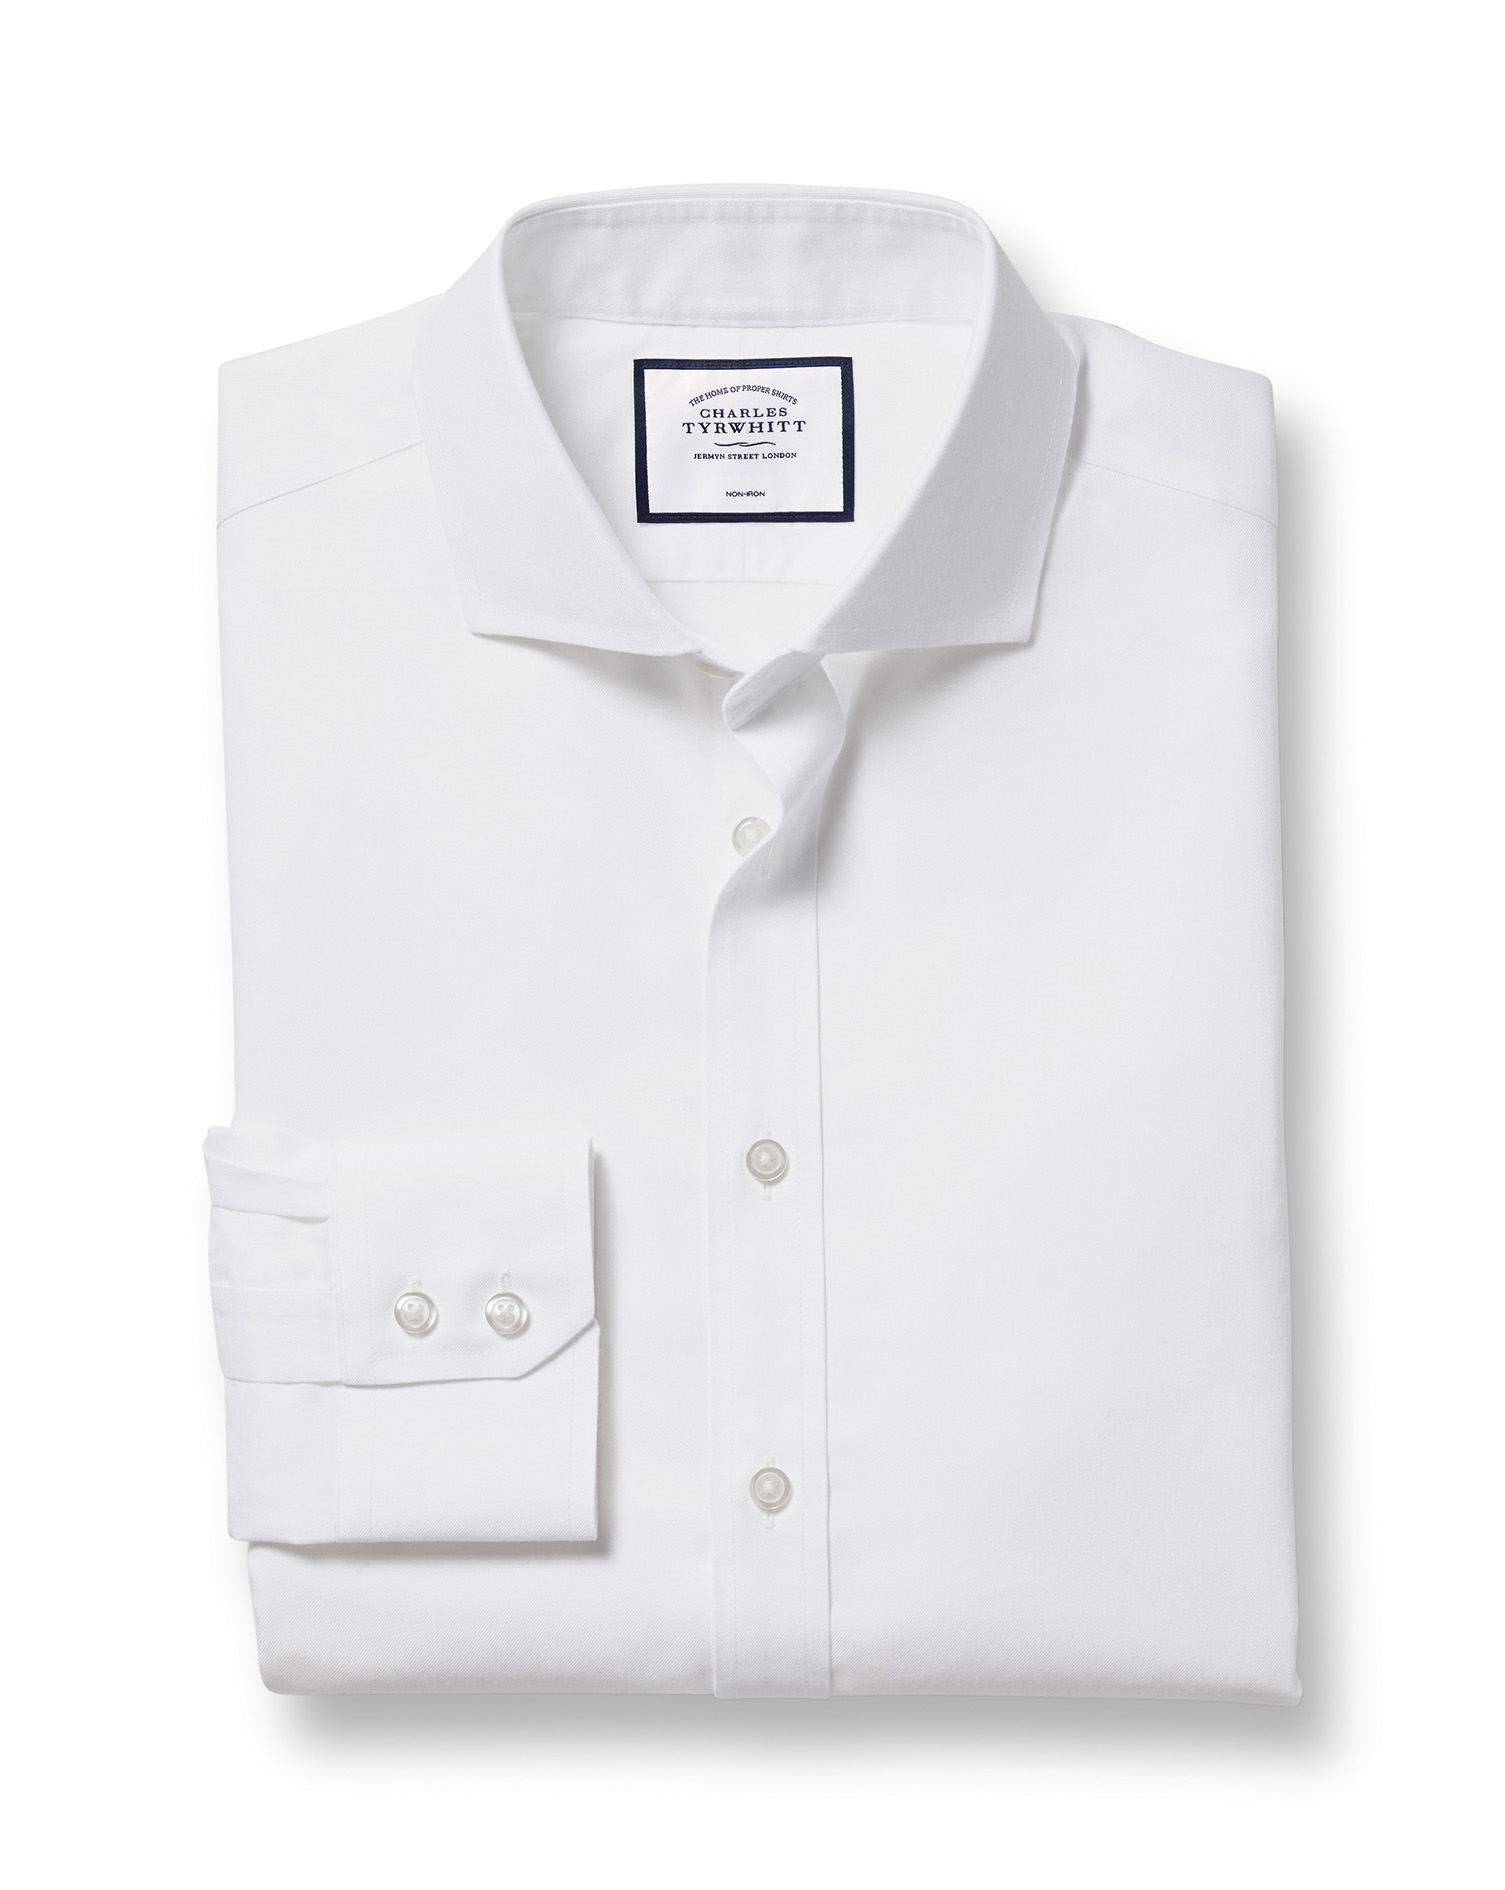 Slim Fit Extreme Cutaway Non-Iron Twill White Cotton Formal Shirt Double Cuff Size 17/35 by Charles